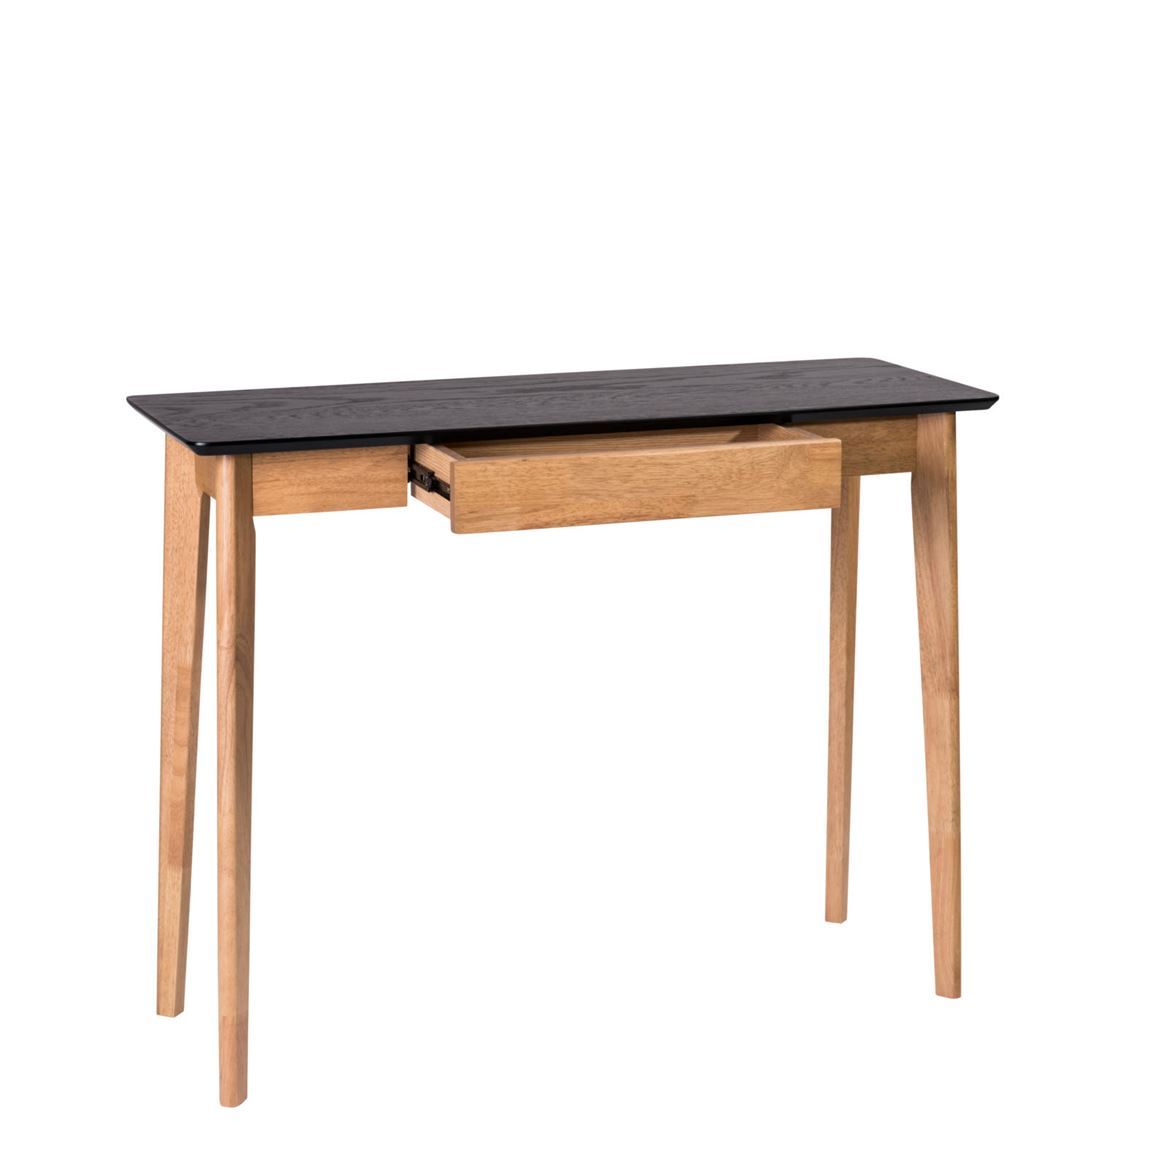 HERNING Consola negro, natural A 85 x An. 40 x L 110 cm_herning-consola-negro,-natural-a-85-x-an--40-x-l-110-cm